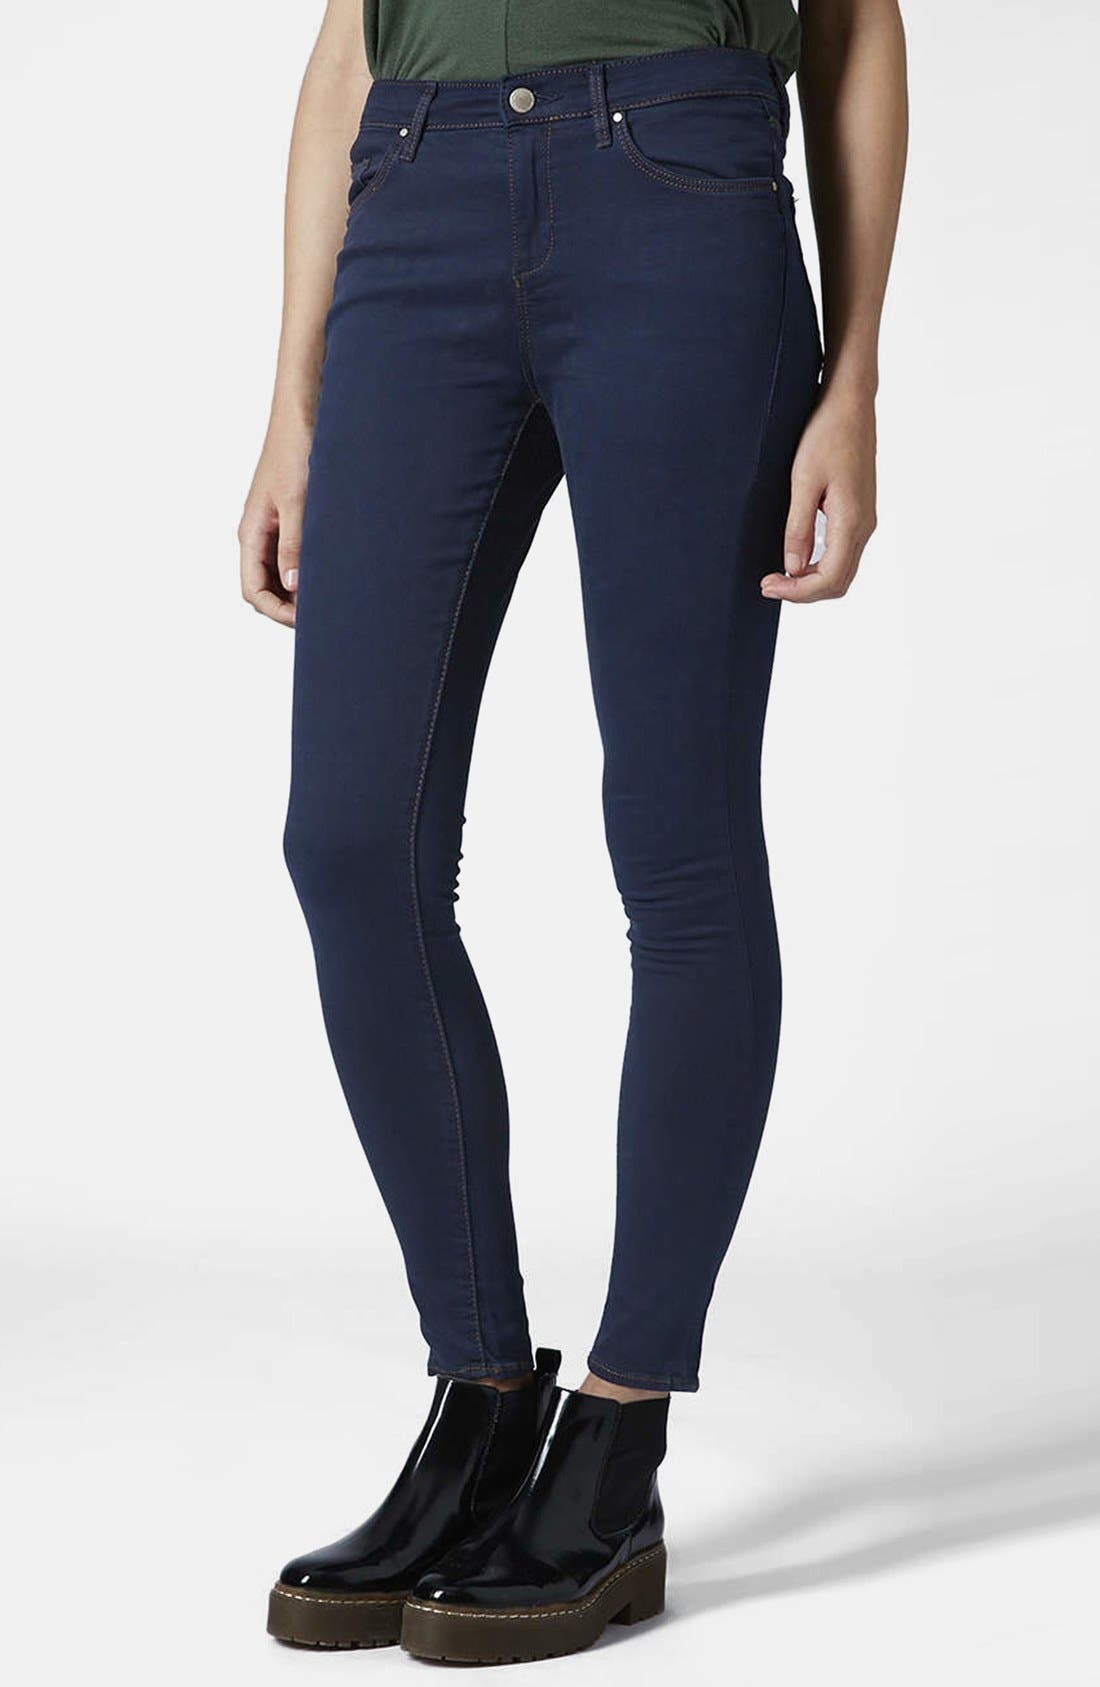 Alternate Image 1 Selected - Topshop Moto 'Leigh' Skinny Jeans (Blue) (Regular & Short)